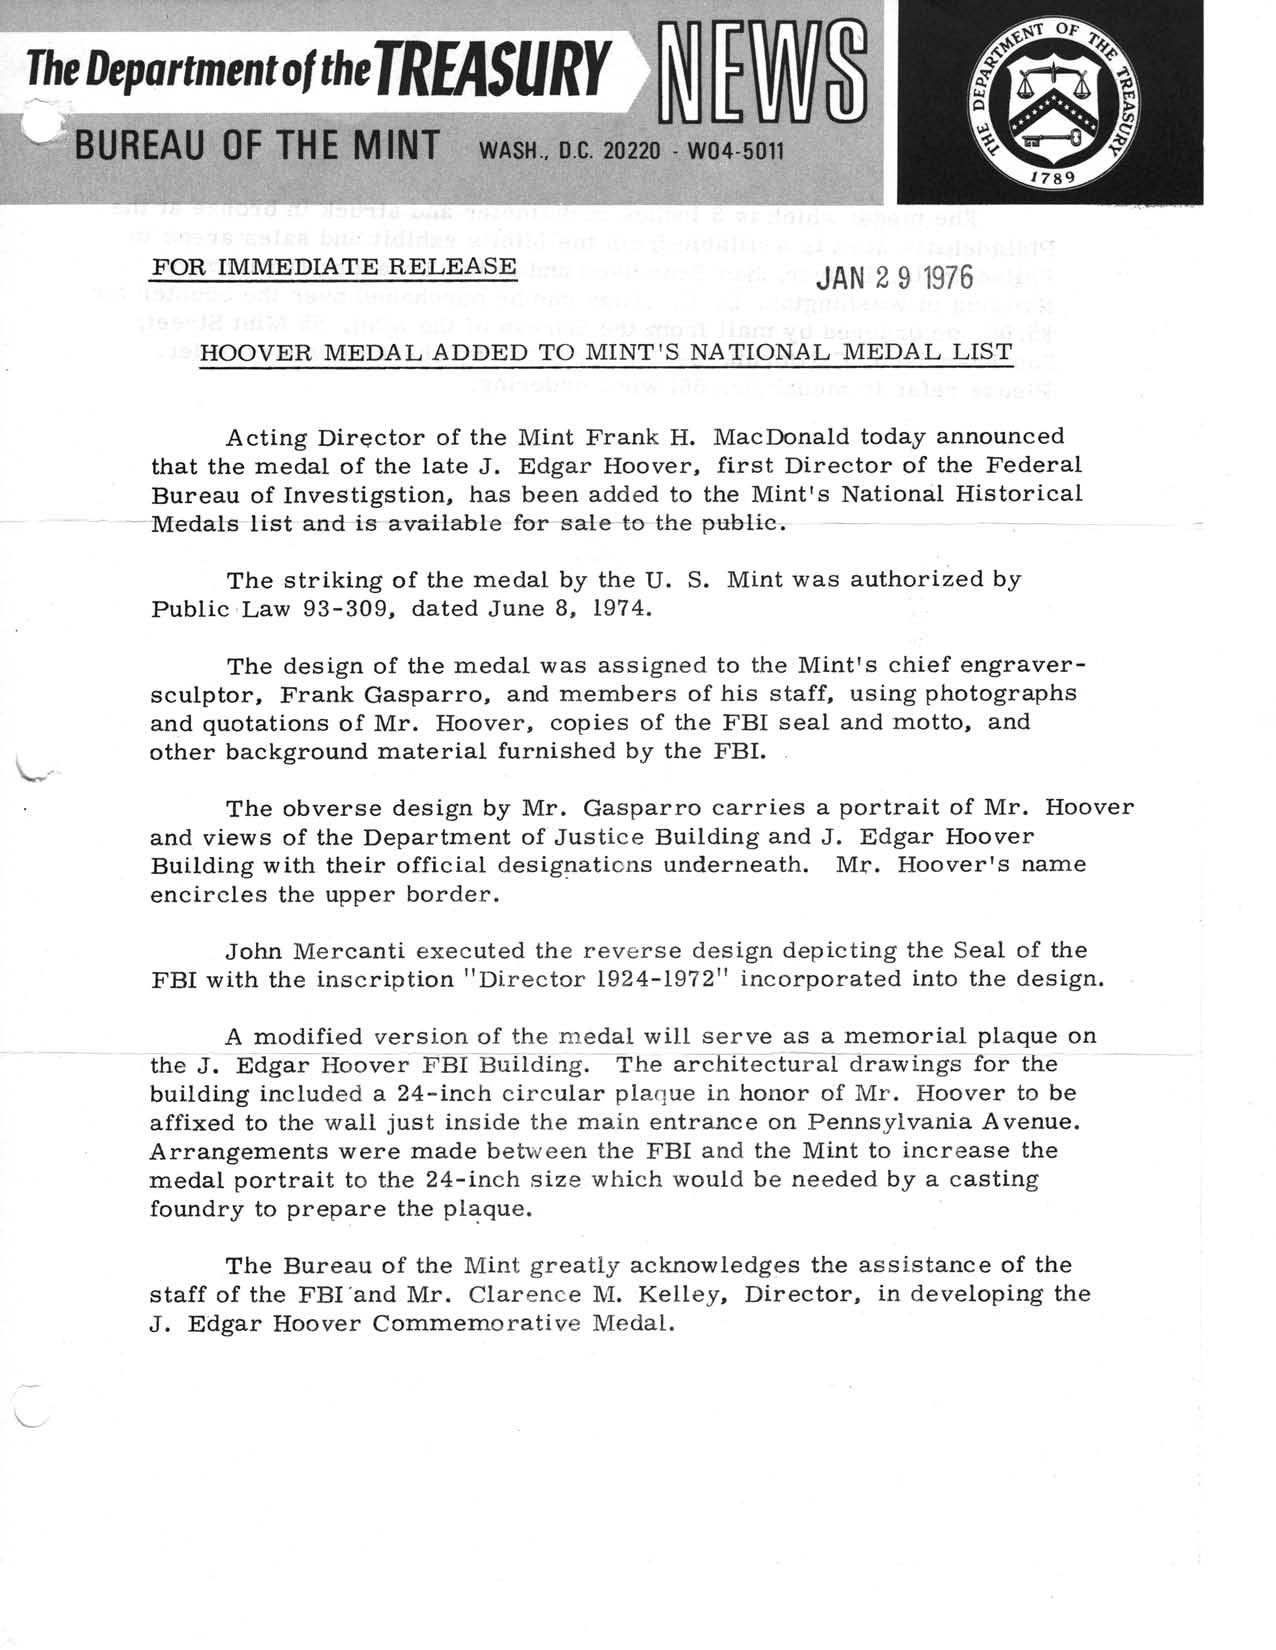 Historic Press Release: Hoover Medal on Medal List, Page 1